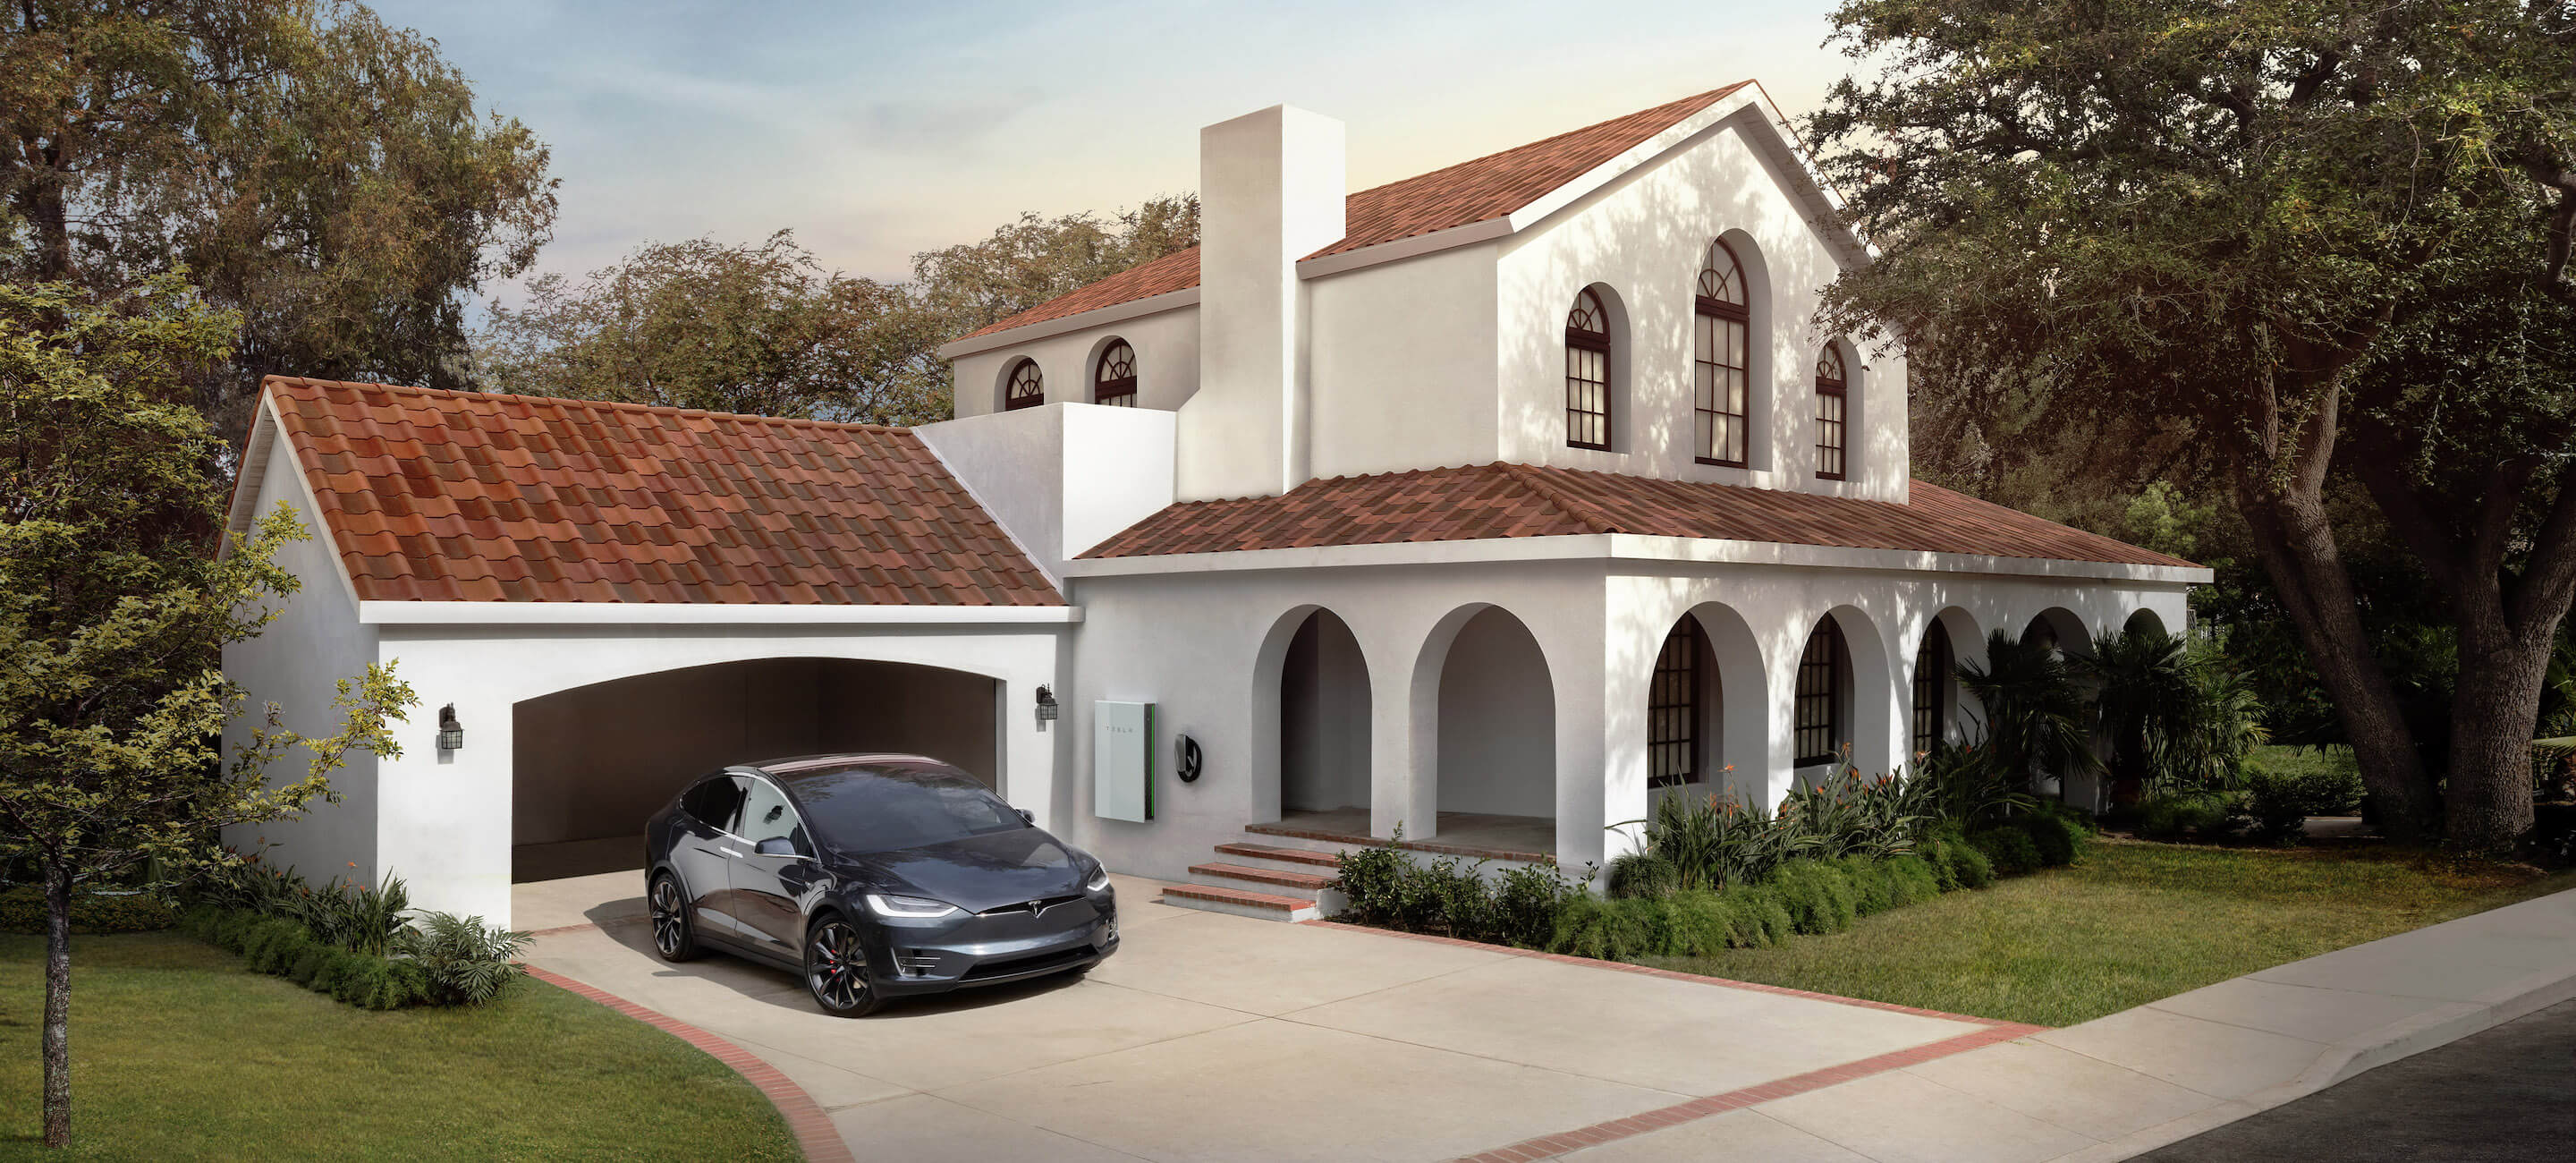 Tesla Solar Roof Pricing Details How Much Will Tesla